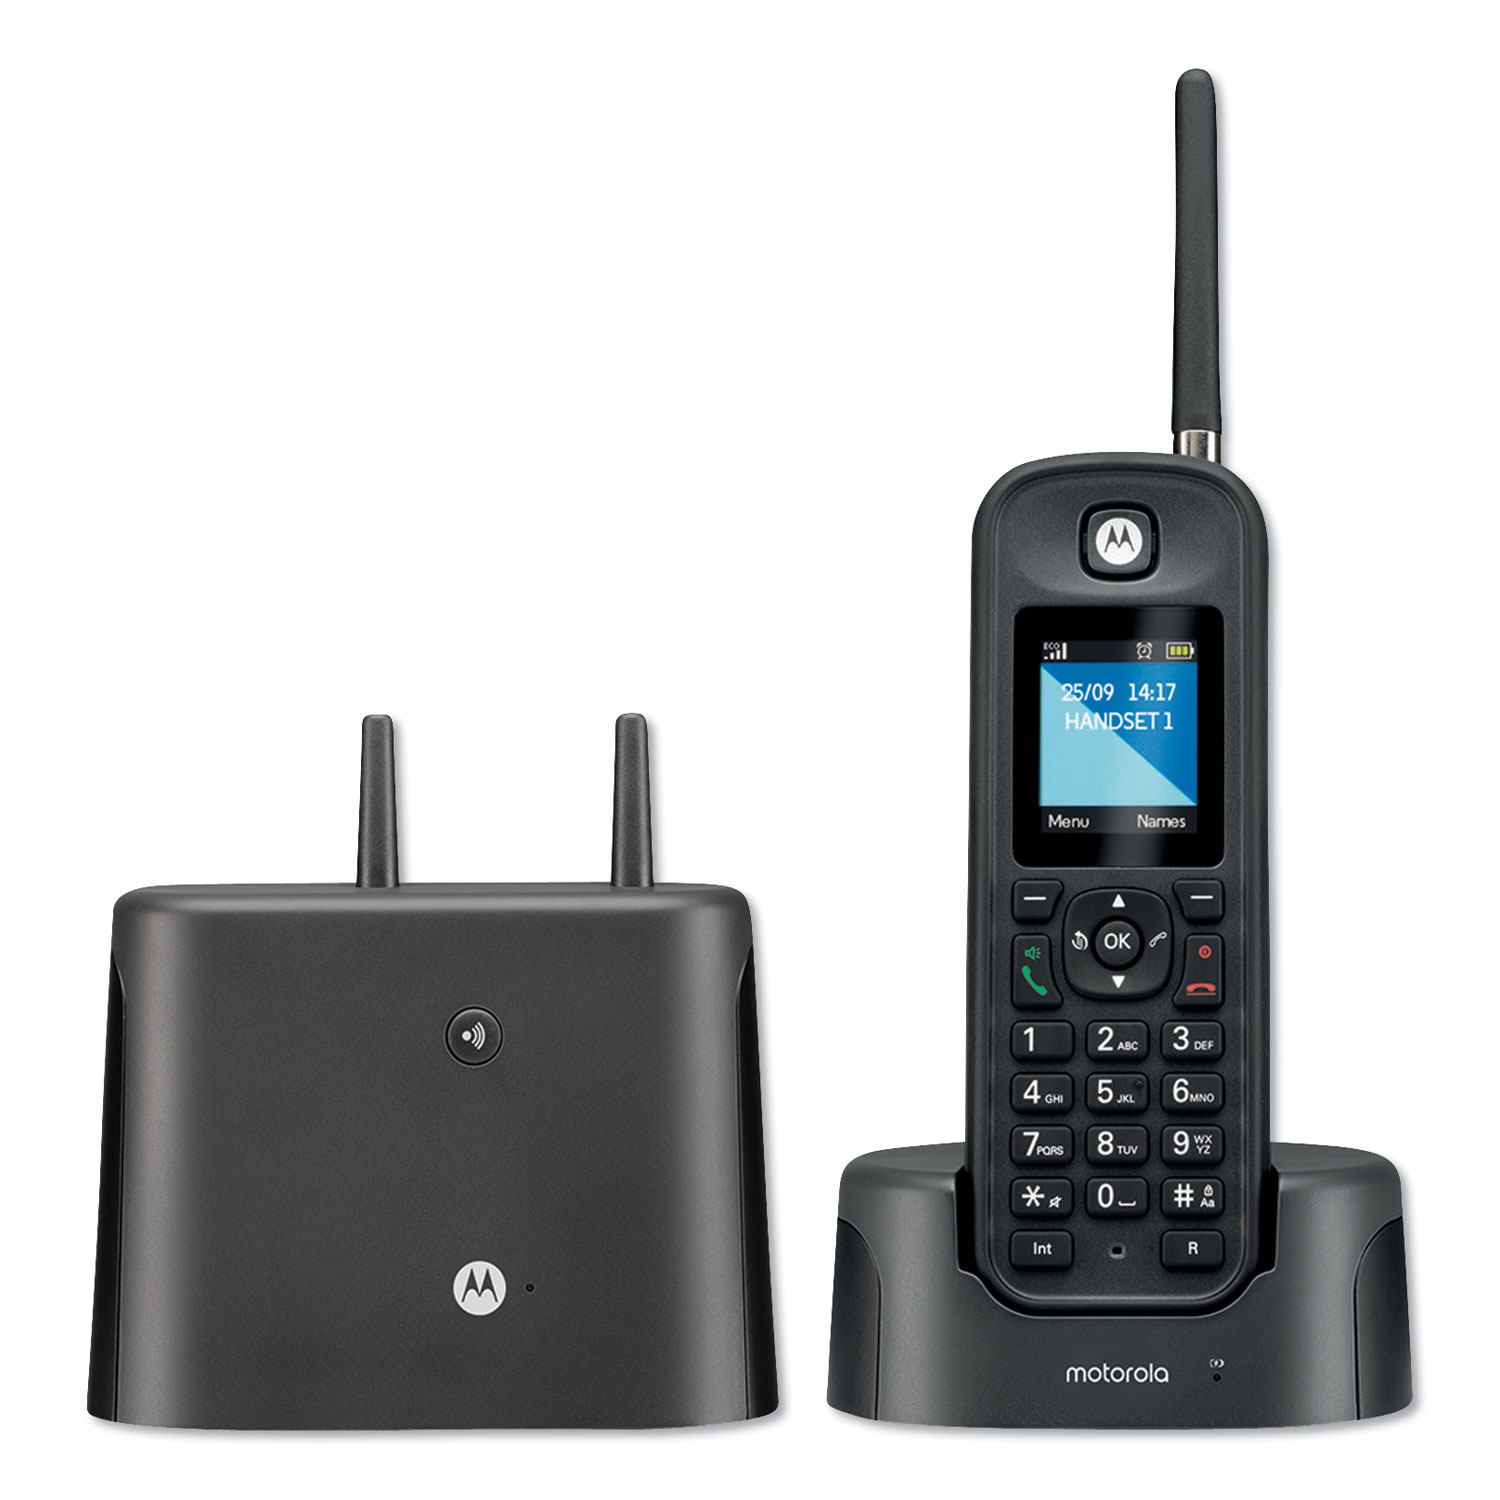 MTR0200 Series Digital Cordless Telephone with Answering Machine, 1 Handset